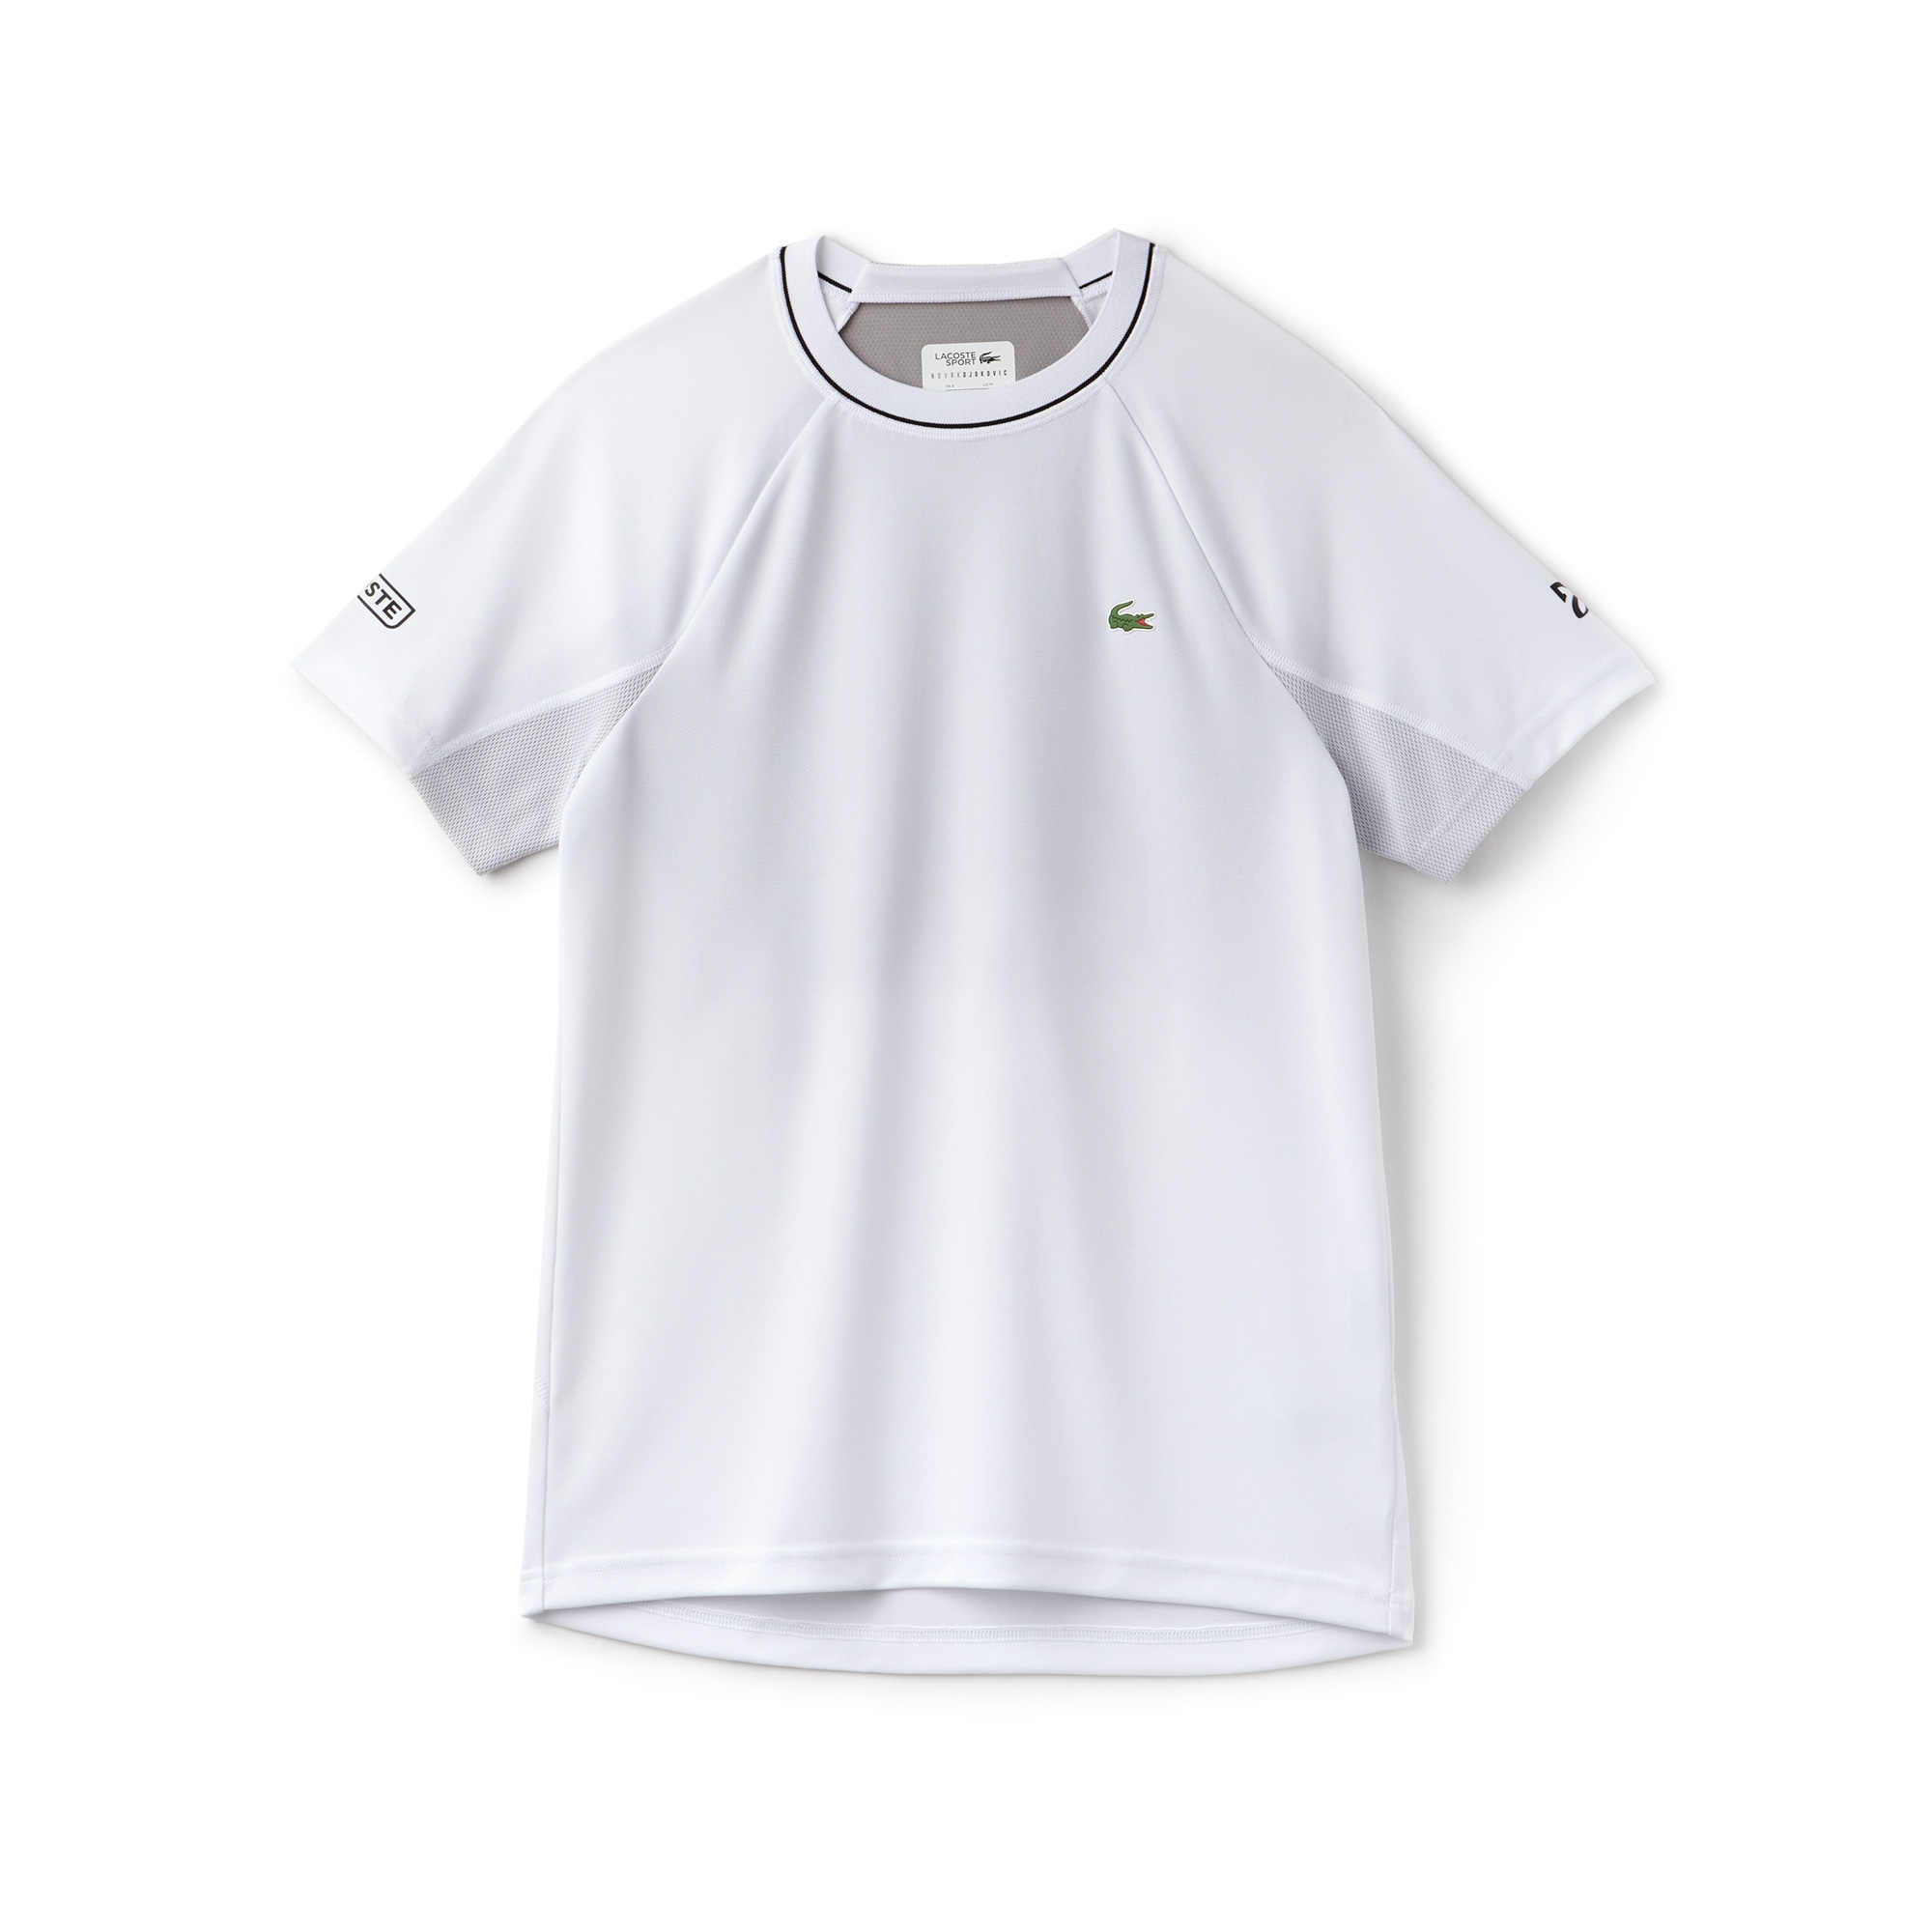 Men's SPORT Tech Piqué And Mesh T-Shirt - Novak Djokovic Supporter Collection